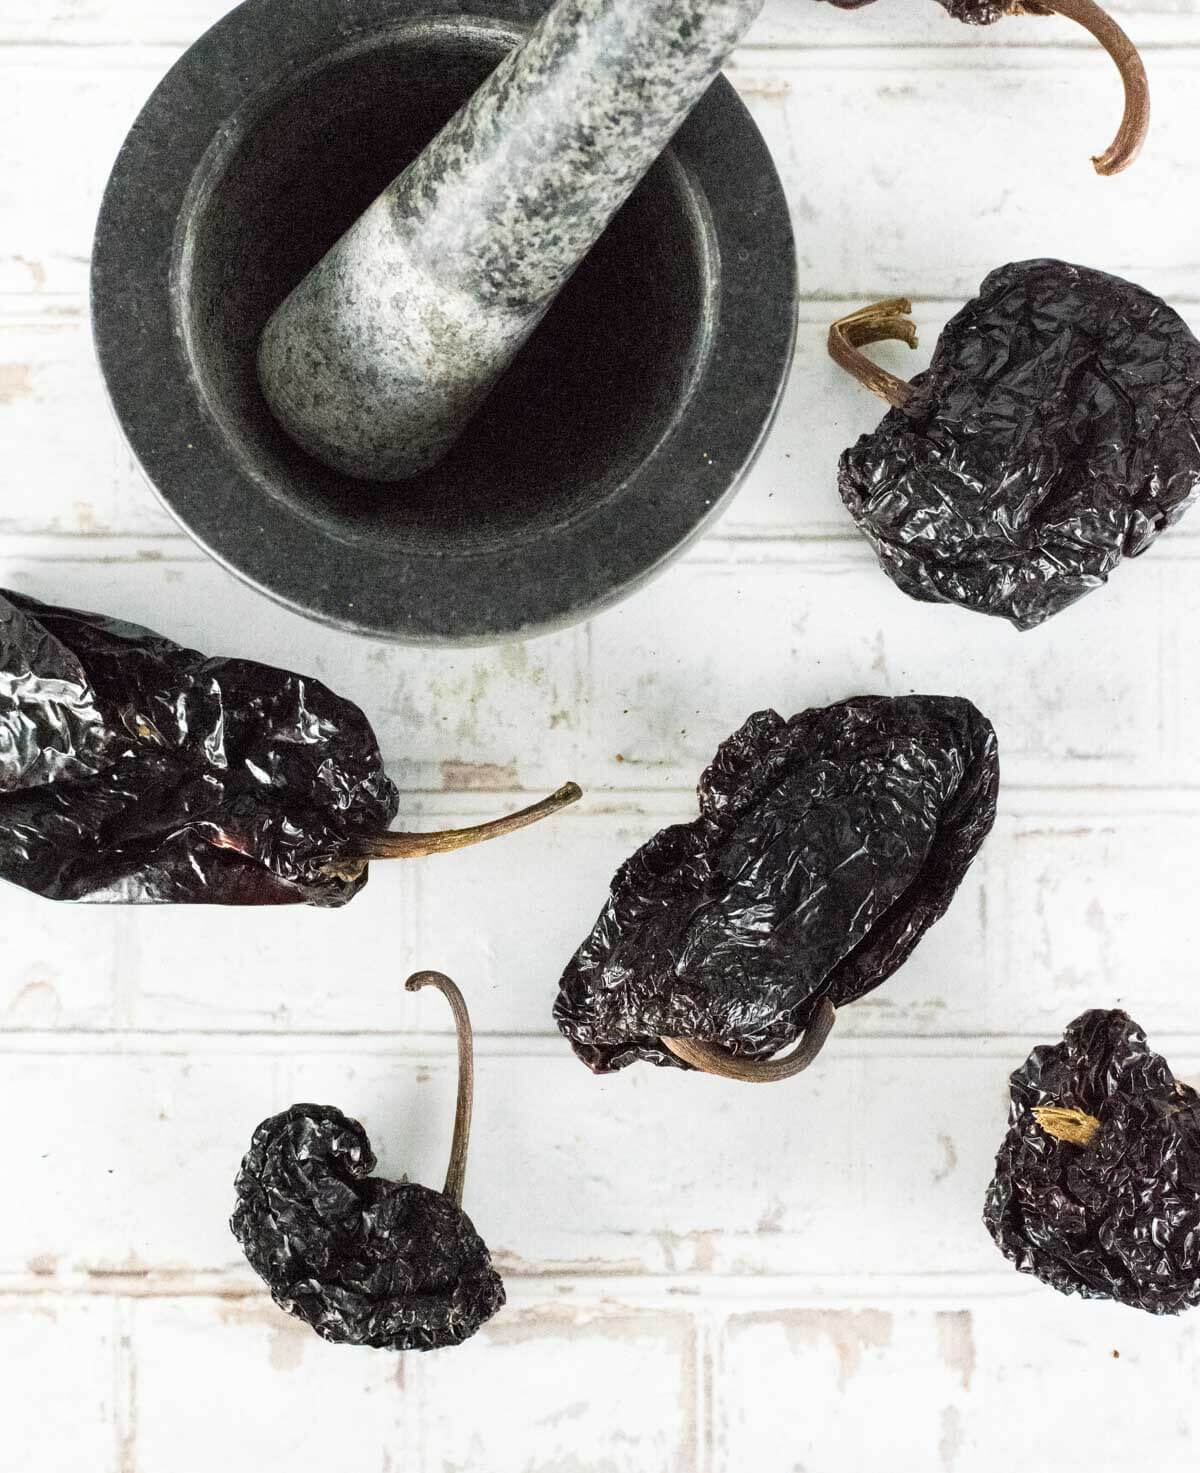 Dried ancho chiles sitting by mortar and pestle.